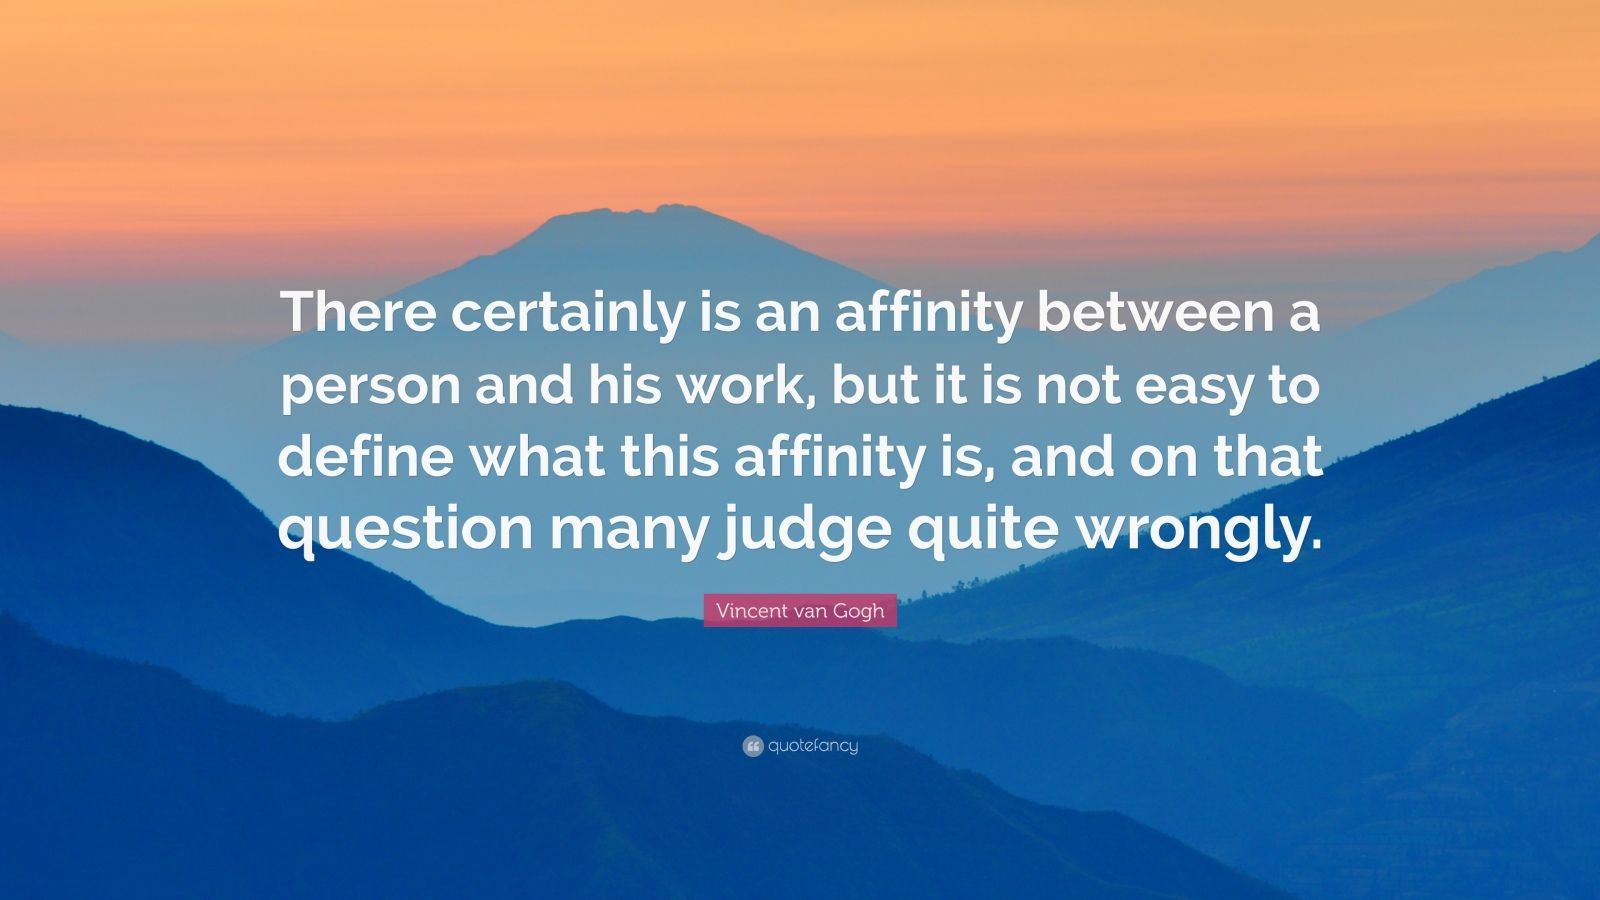 """Vincent van Gogh Quote: """"There certainly is an affinity between a person and his work, but it is not easy to define what this affinity is, and on that question many judge quite wrongly."""""""